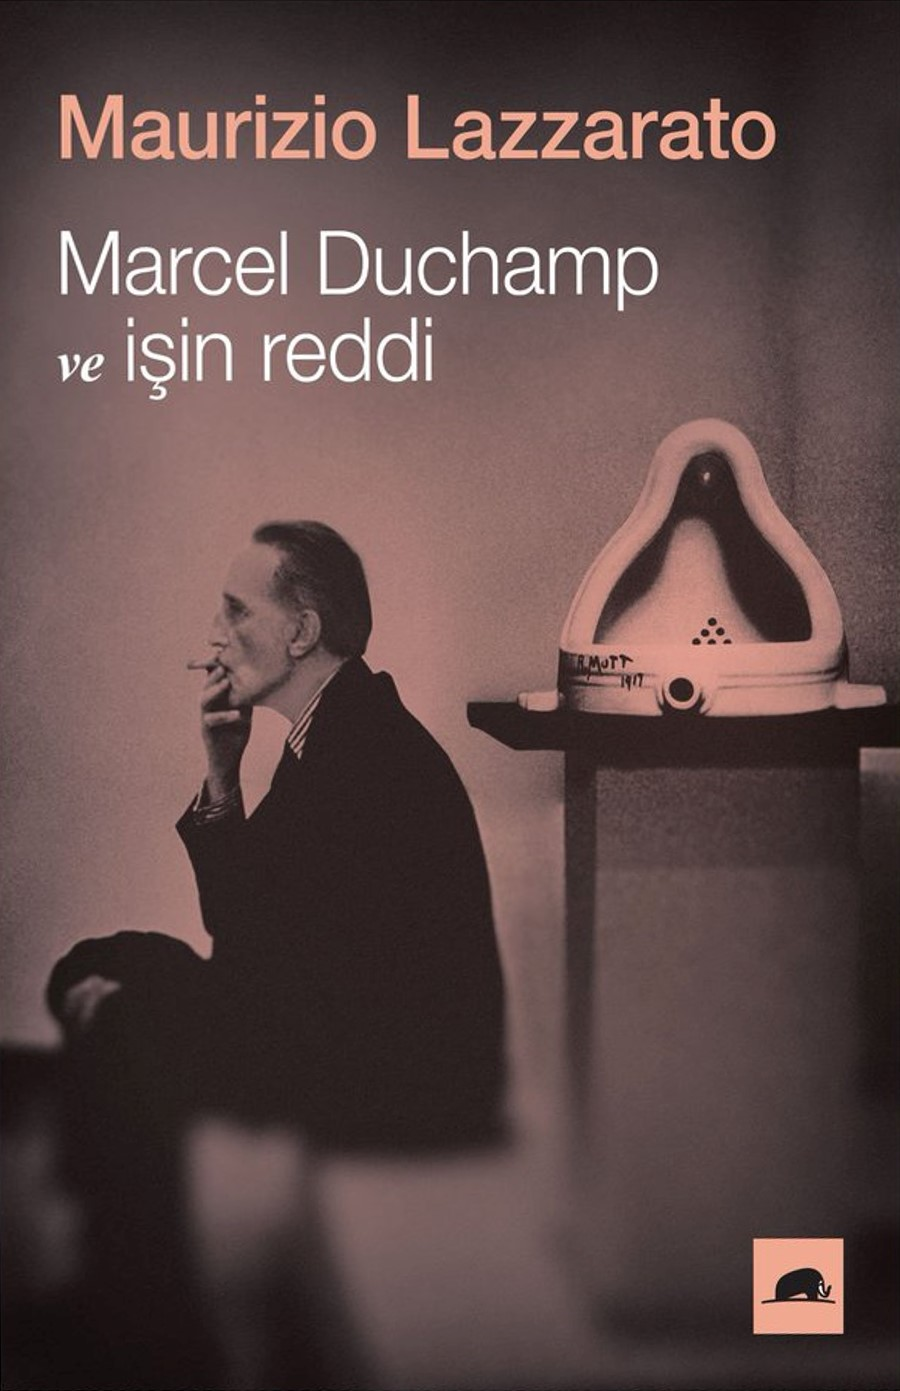 the controversy of marcel duchamp Marcel duchamp, in full henri-robert-marcel duchamp, (born july 28, 1887, blainville, france—died october 2, 1968, neuilly), french artist who broke down the boundaries between works of art and everyday objects.